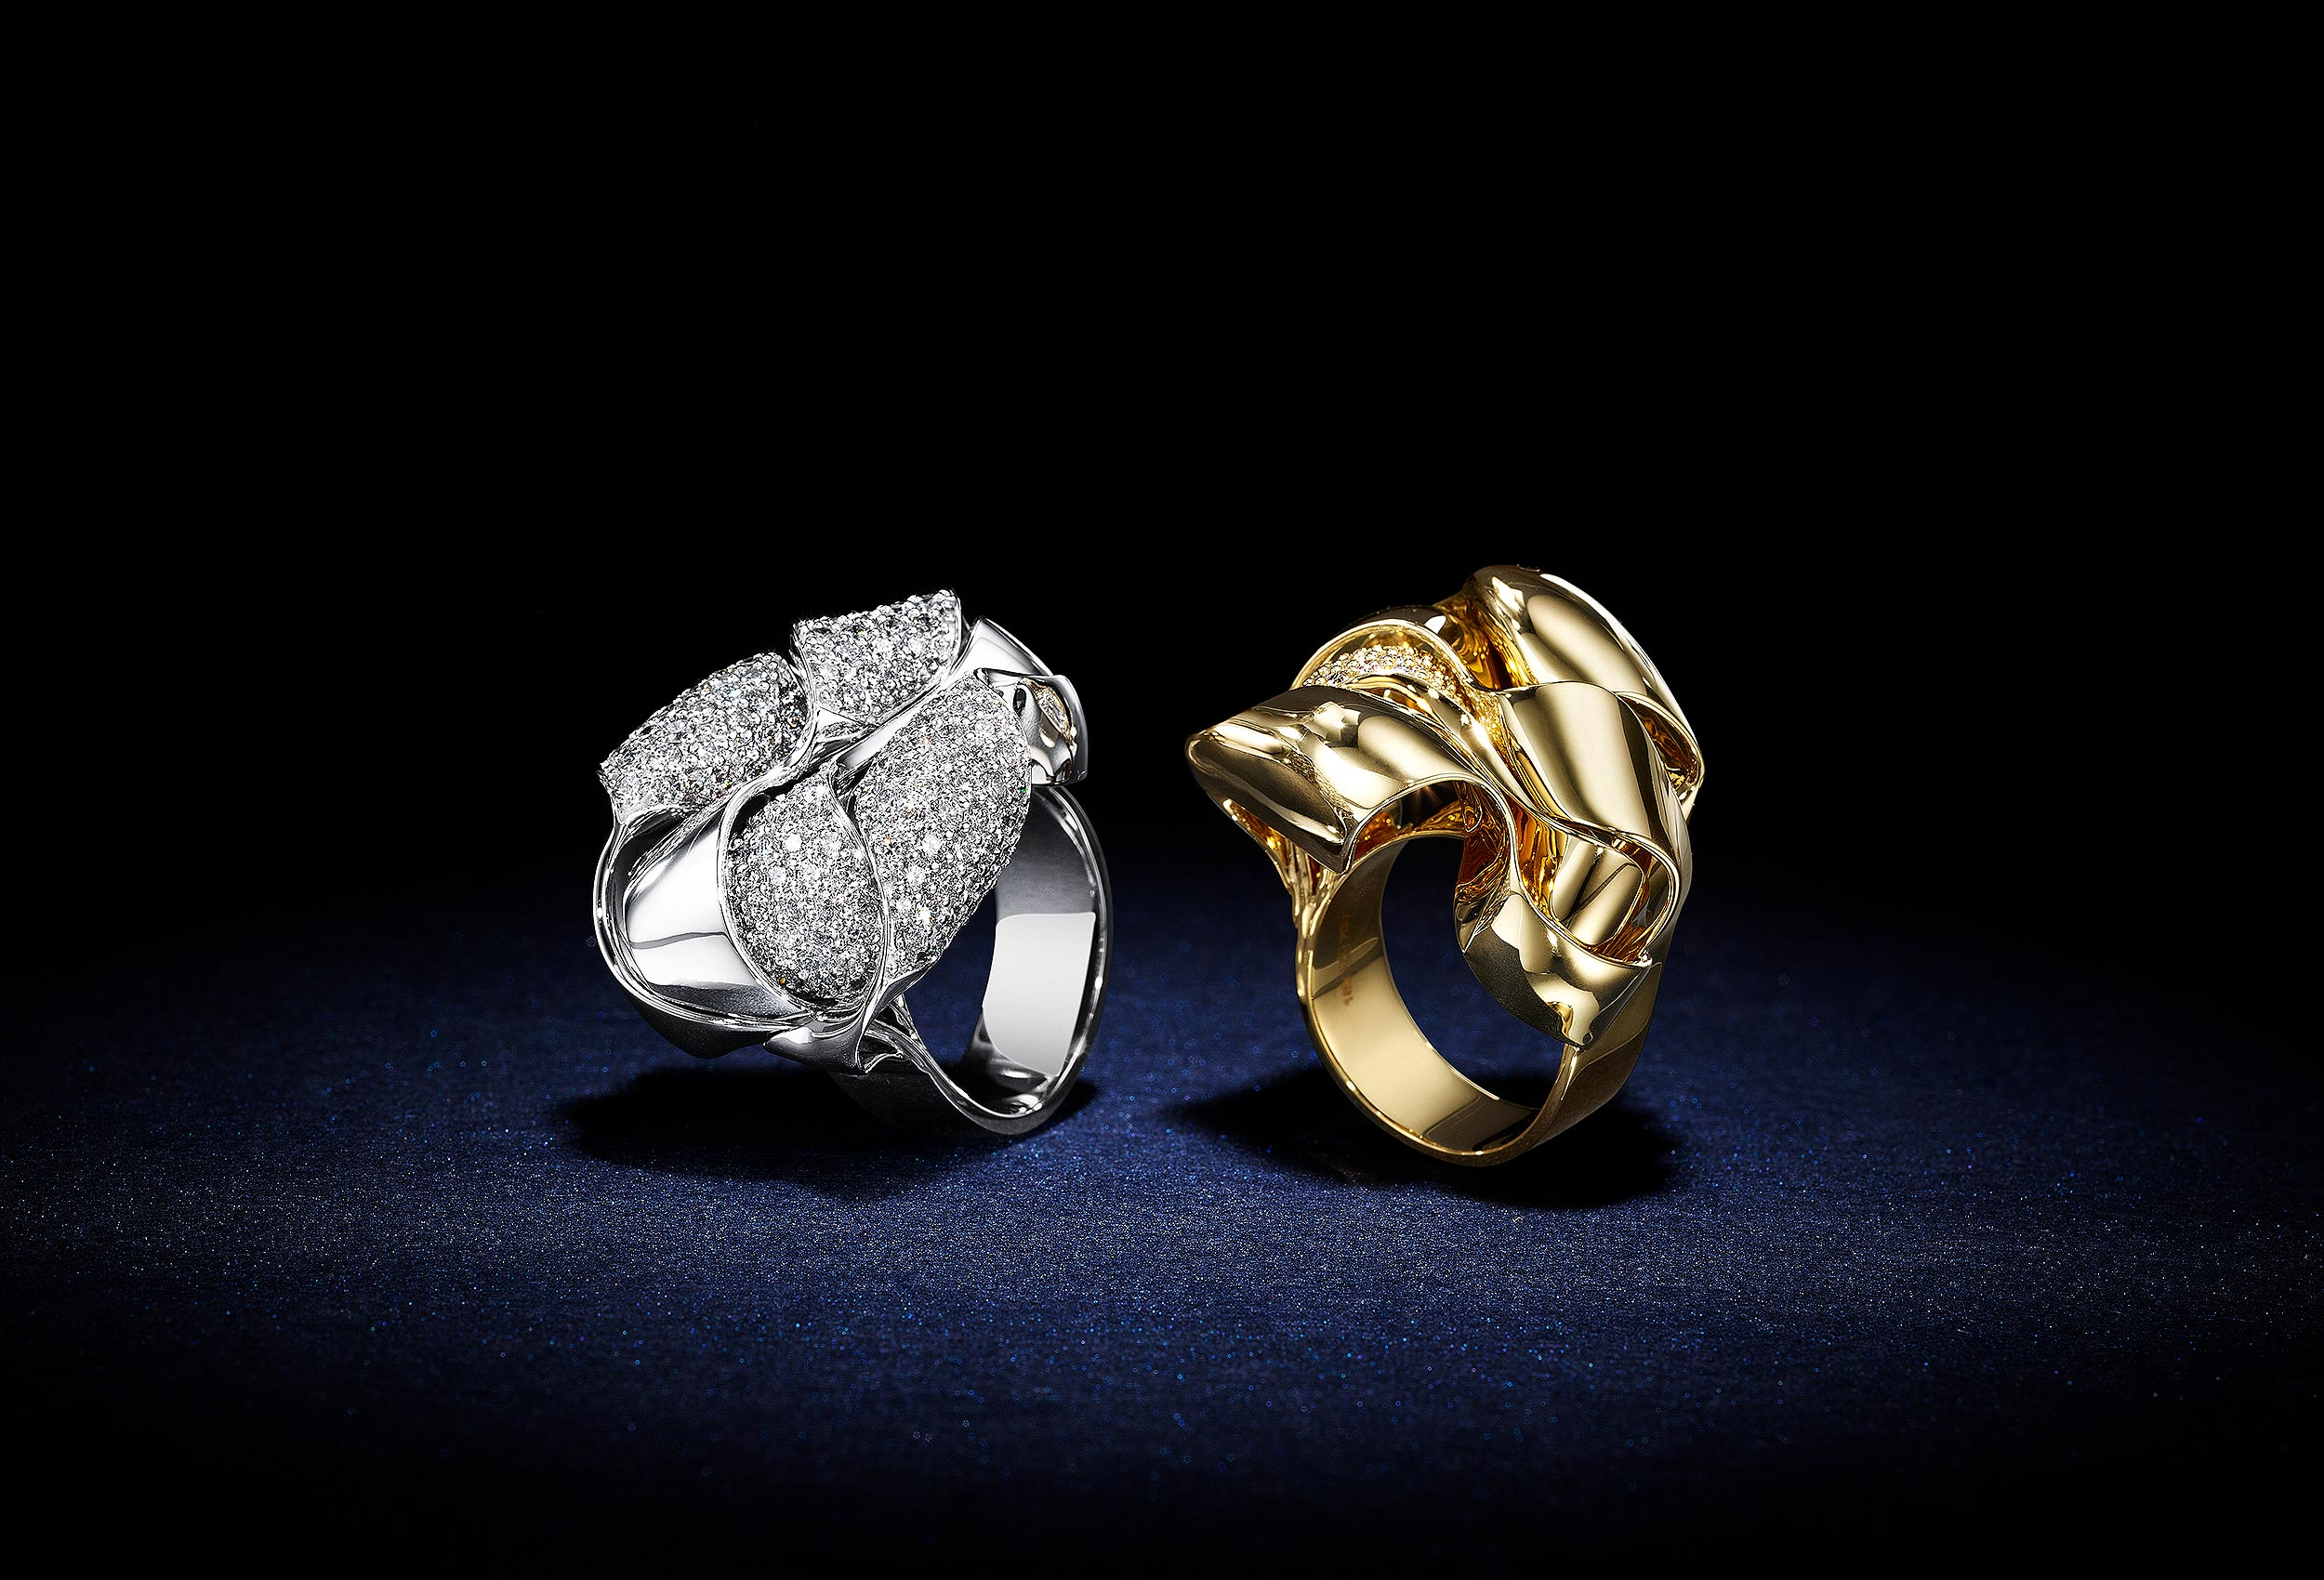 Shiny-and-Encrusted-Rings